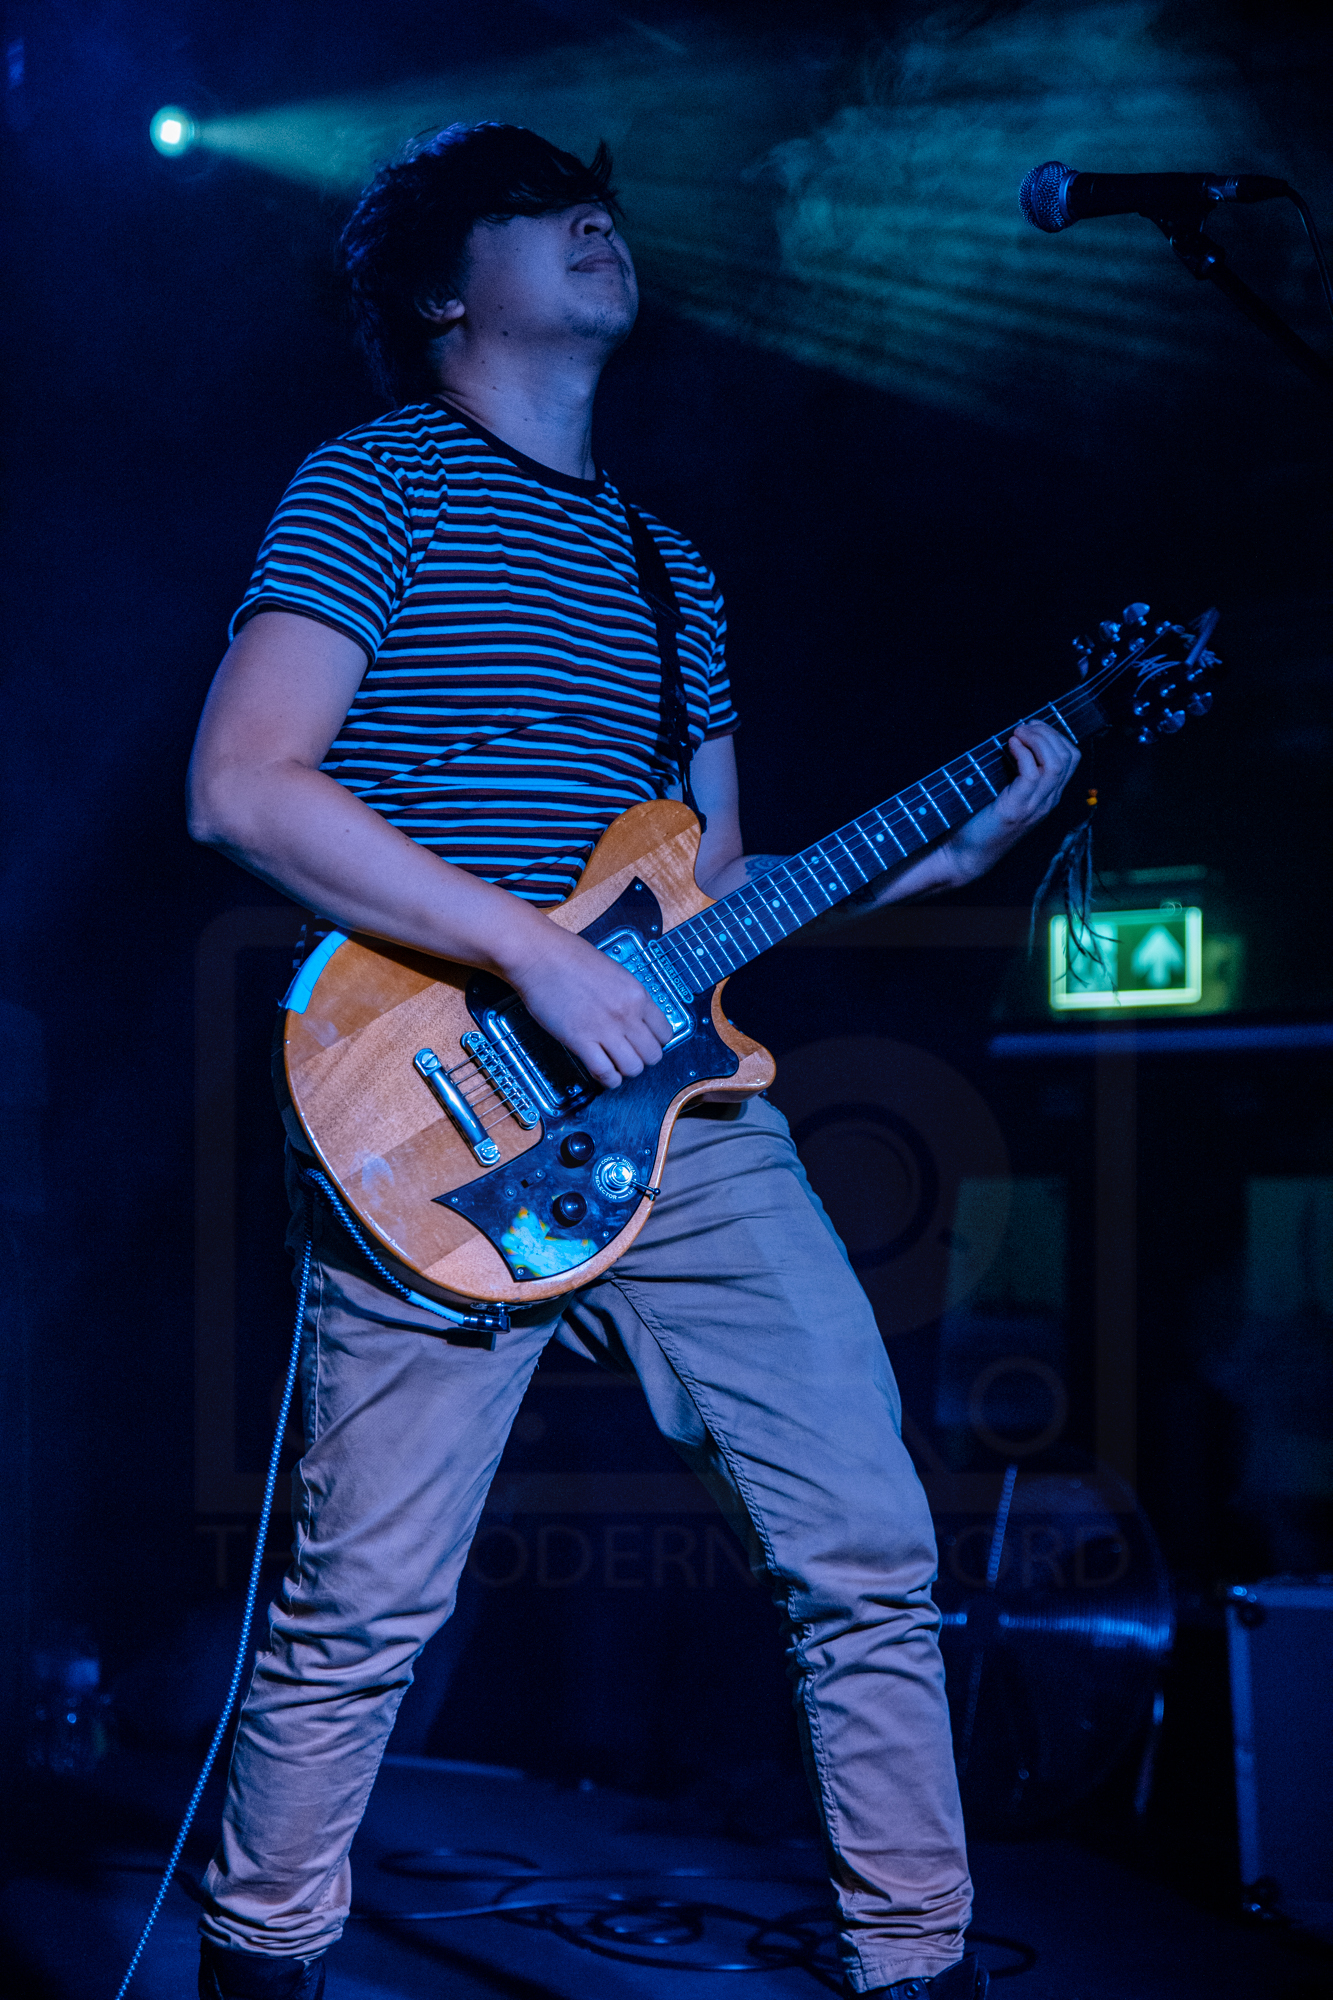 8-WithConfidence-ManchesterAcademy3-26-9-19.jpg